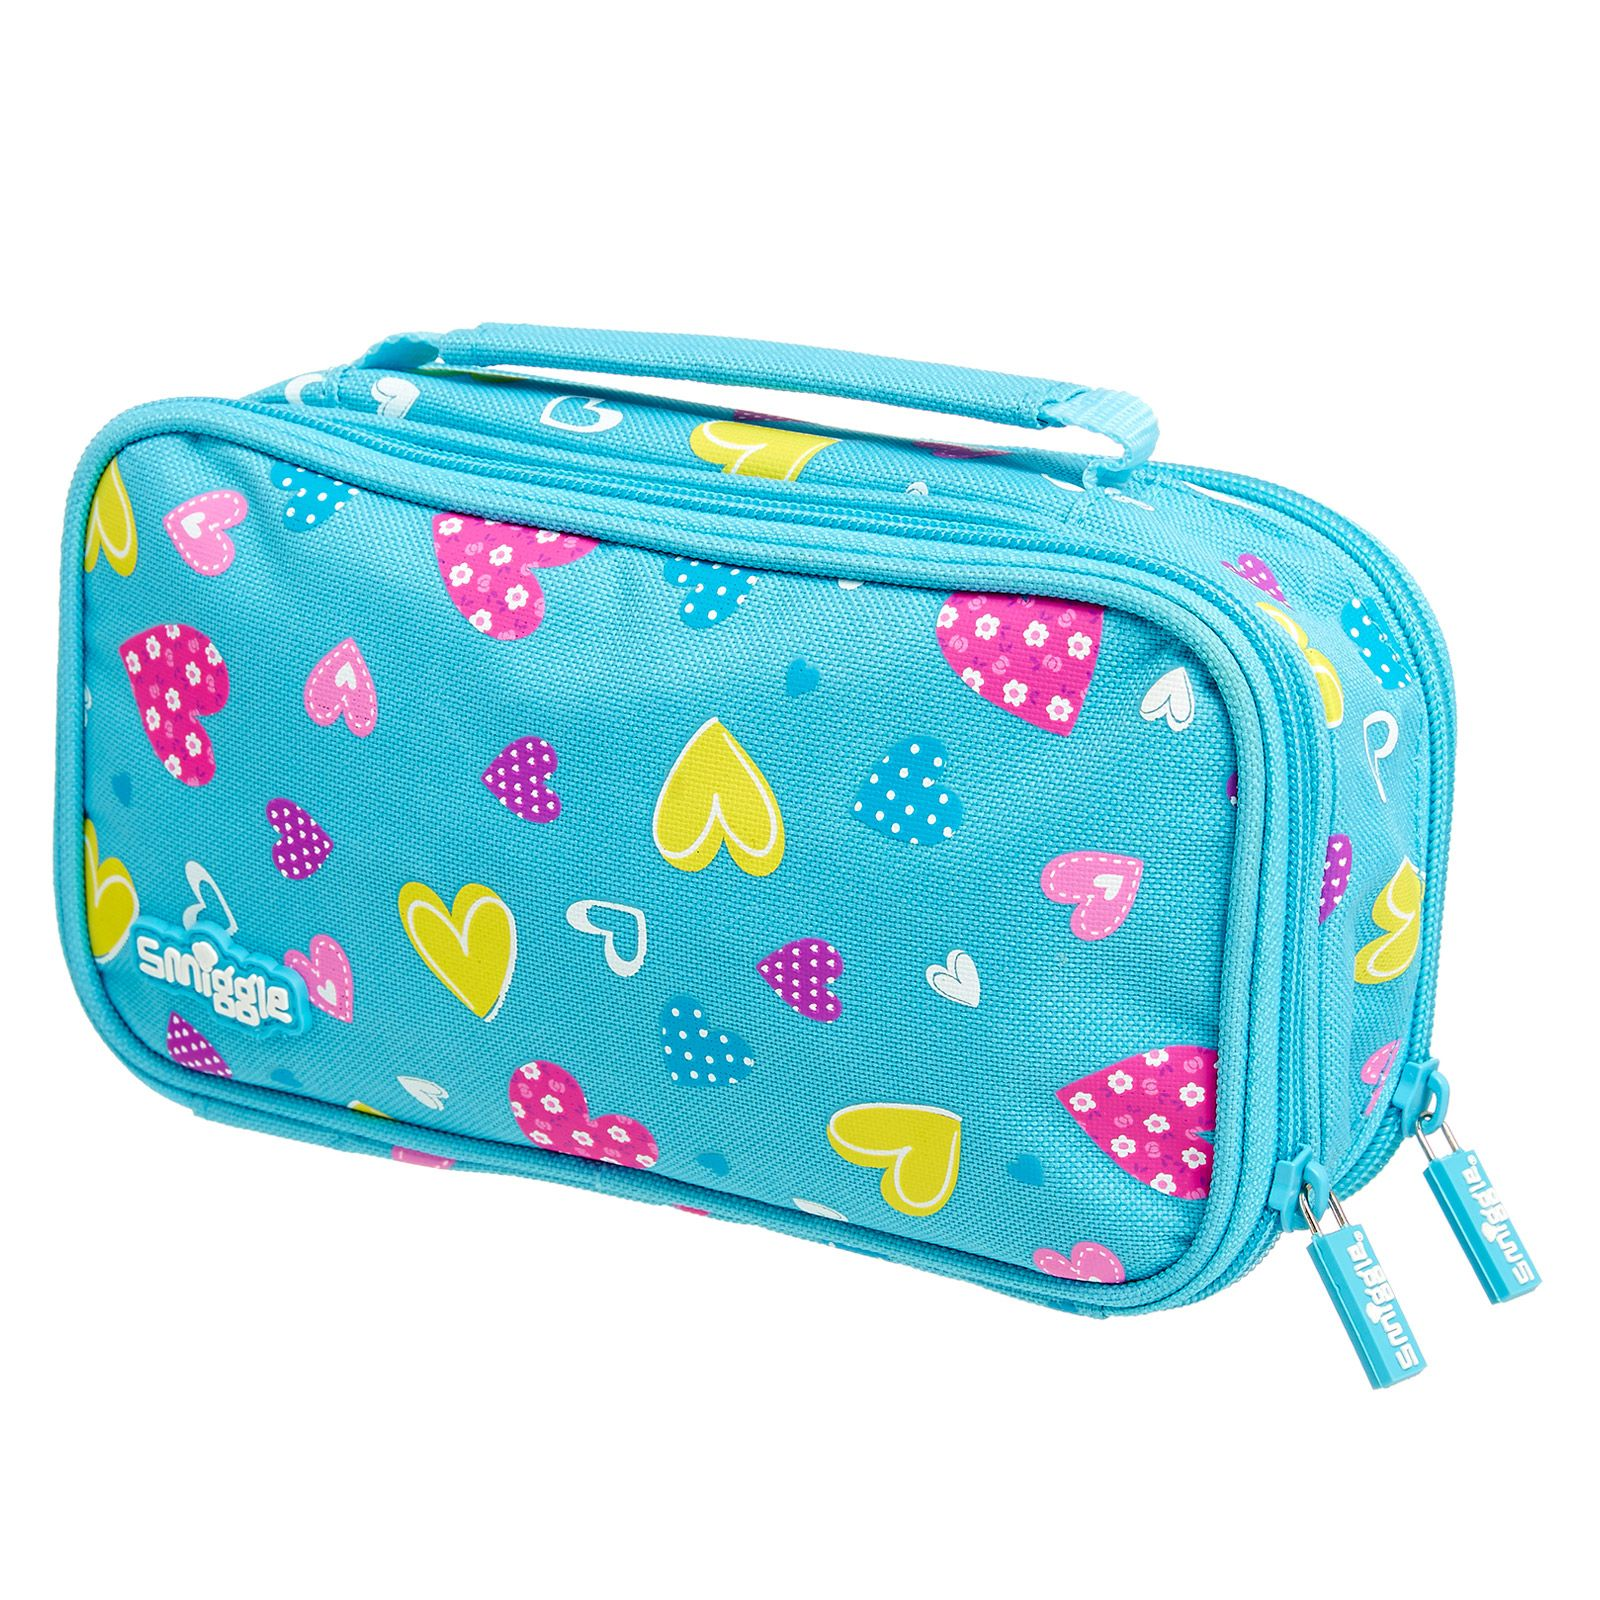 Smiles Go Anywhere Pencil Case Smiggle Pencil Cute